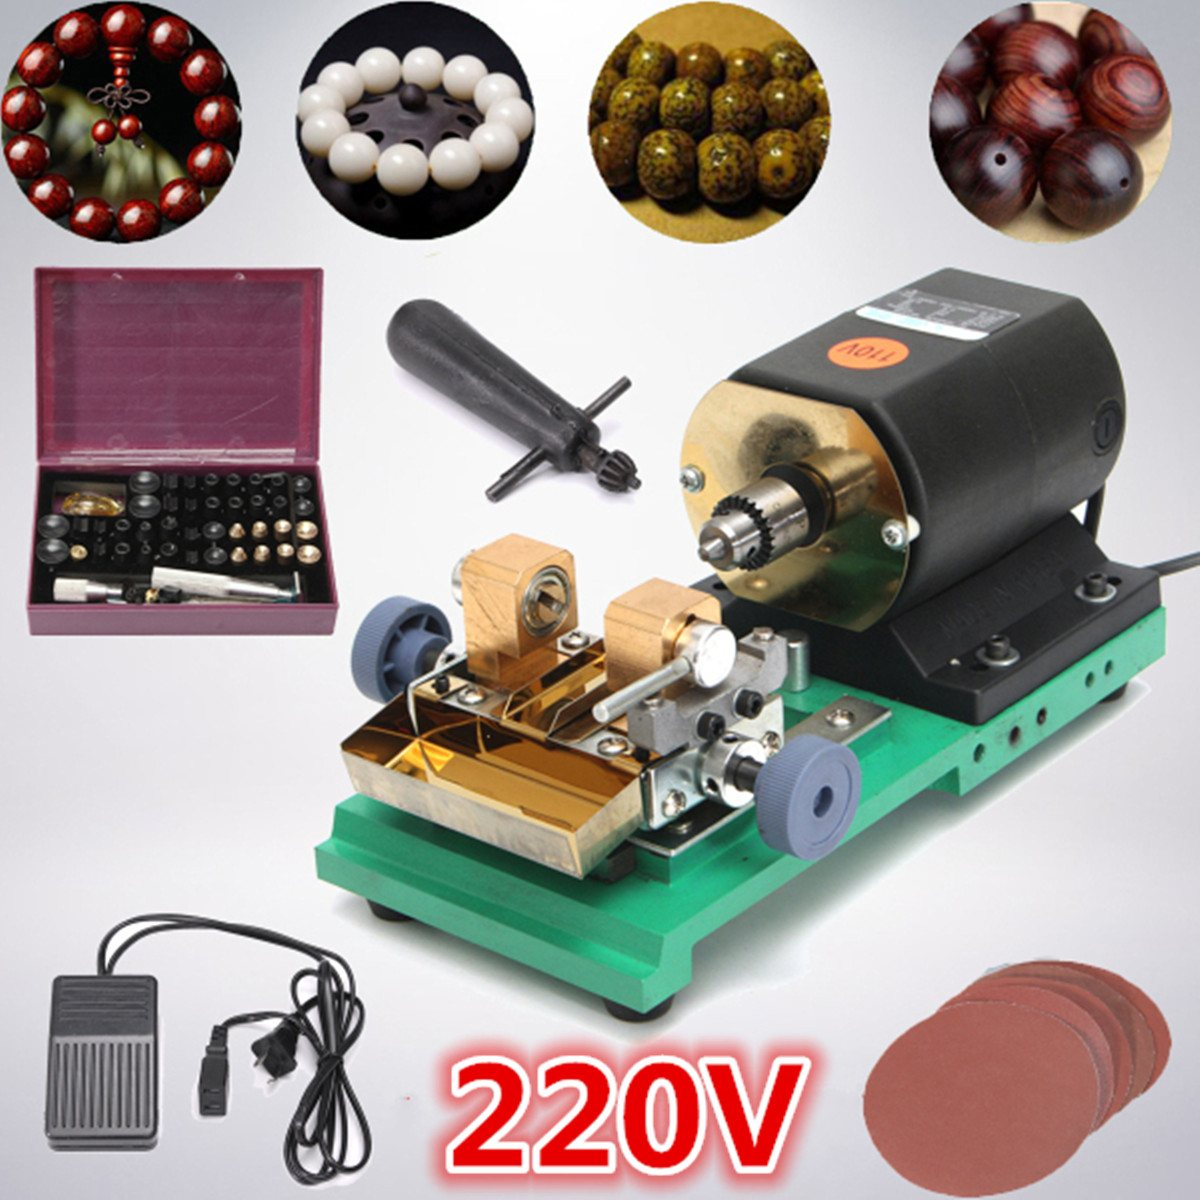 380W 220V Pearl Drilling Holing Machine Driller Full Set Jewelry Jade Driller Tools With Sanding Disc jade hanging milling machine flexible shaft machine jewelry polisher 4mm 220v